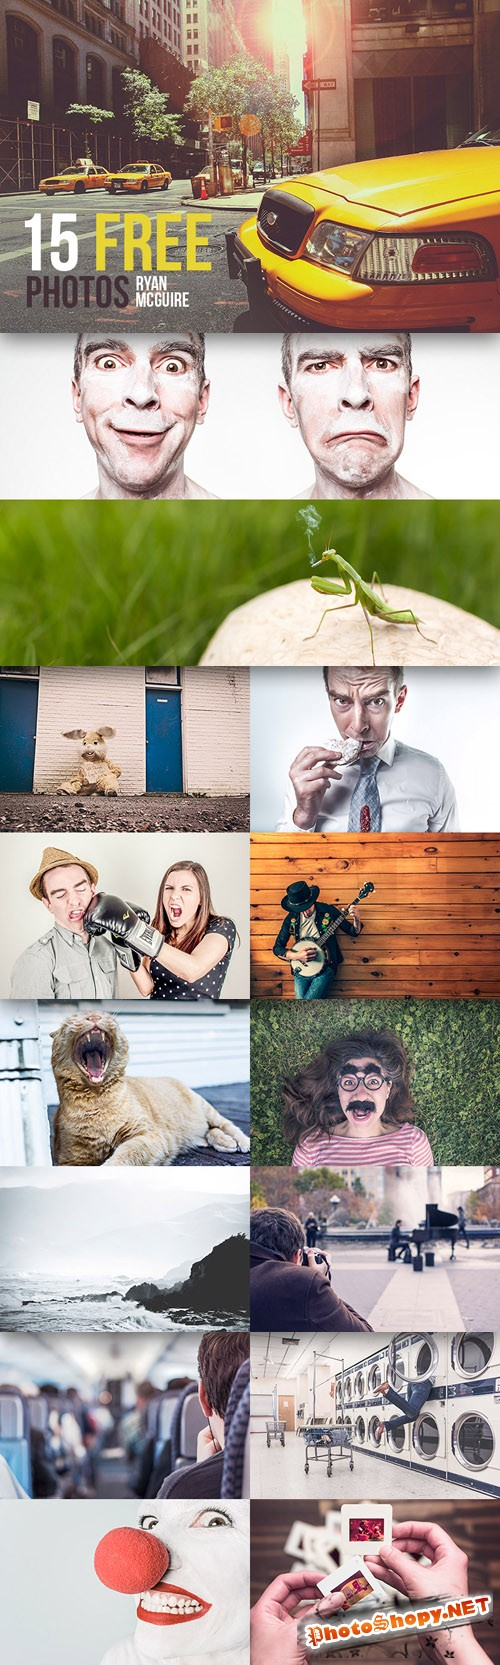 People, Places and Things High-Resolution Photos Bundle